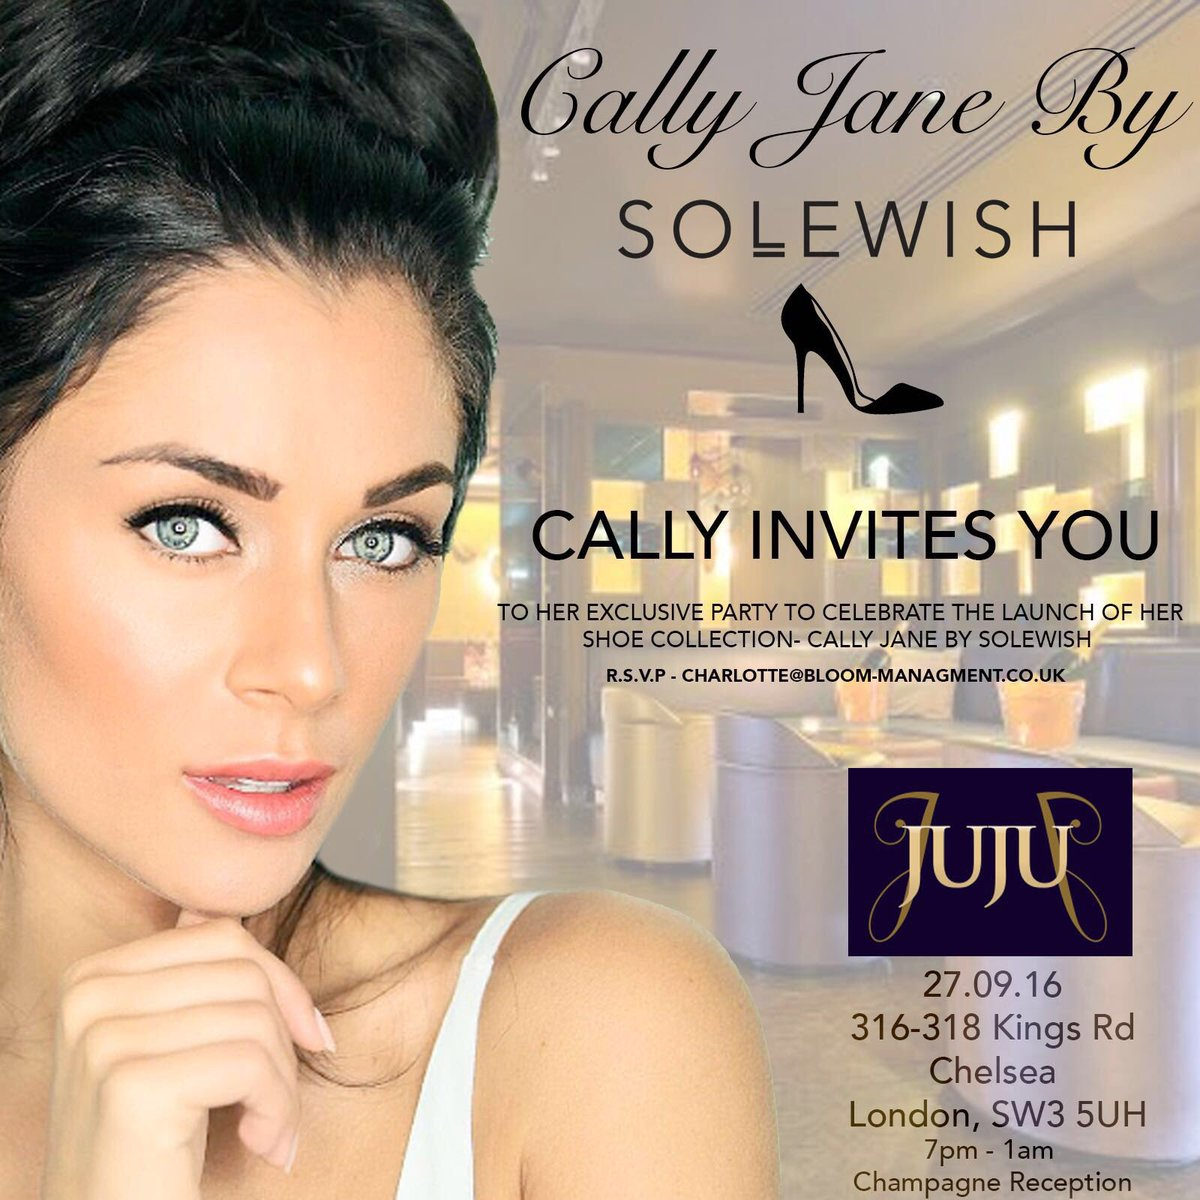 Excited for @MissCallyJane @collection_cj launch party tonight @JuJuKingsRoad Event starts at 7pm invitation only #SoleWish #JujuChelsea